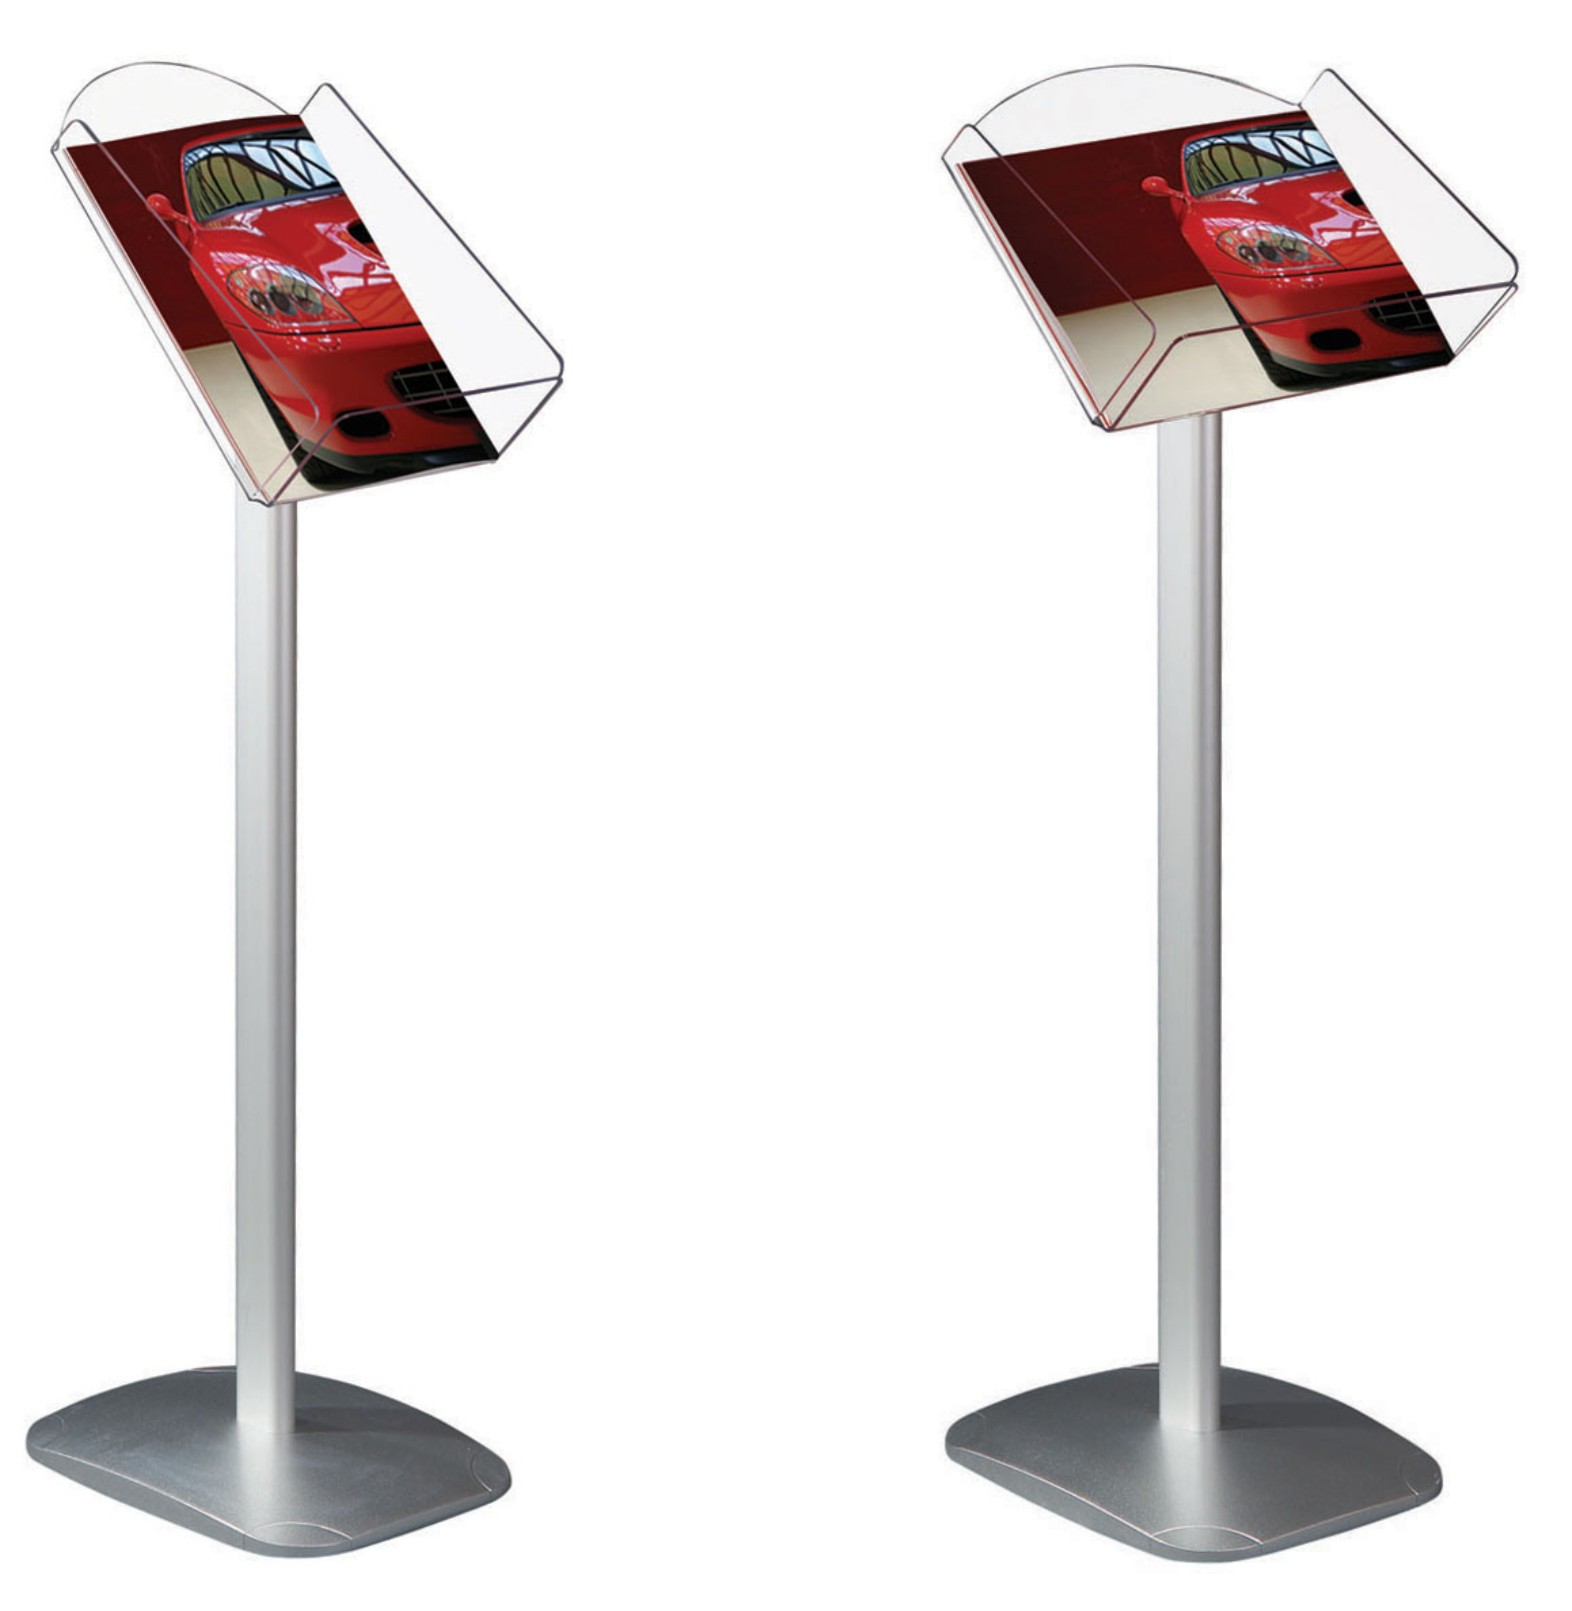 Image result for A4 display stand